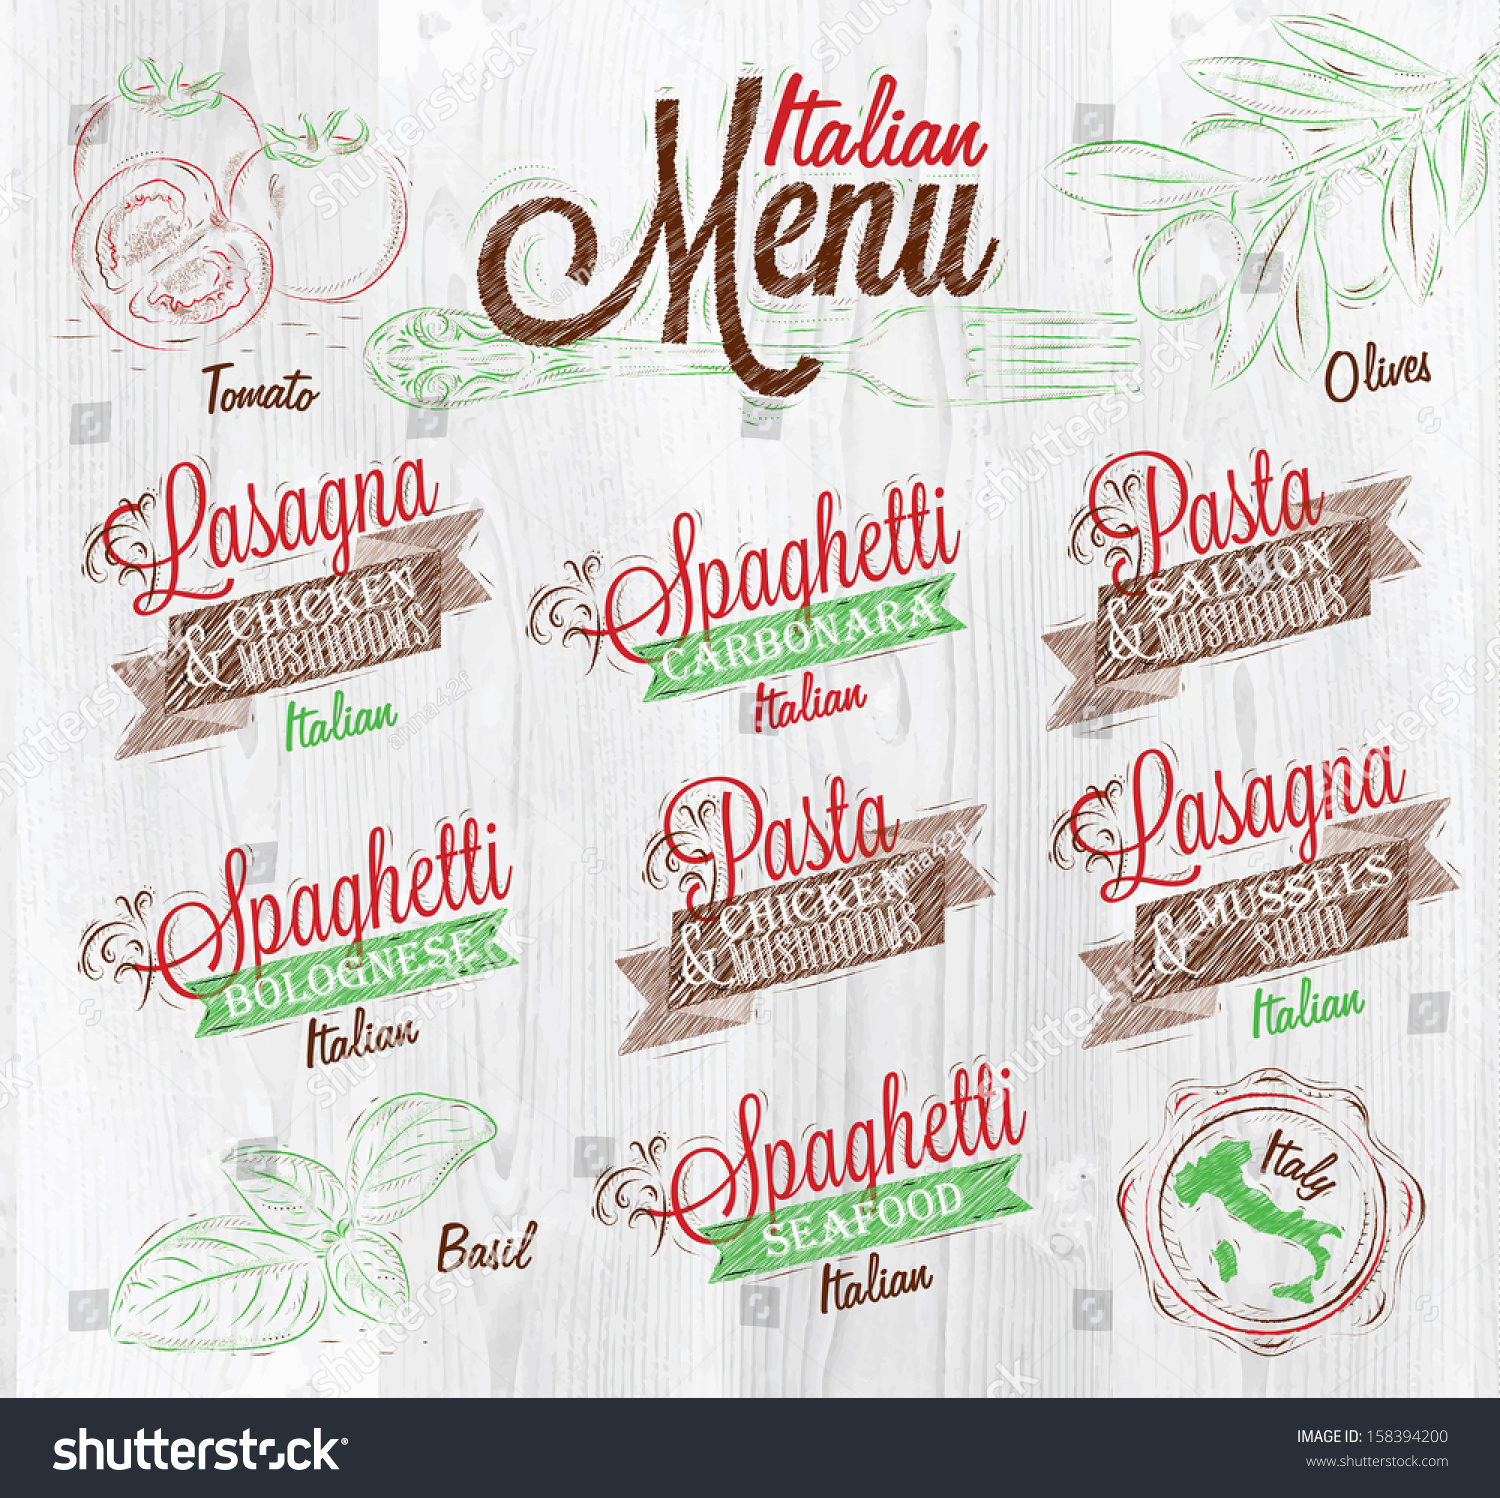 Italian Food Restaurant Names: Menu Italian Names Dishes Spaghetti Lasagna Stock Vector